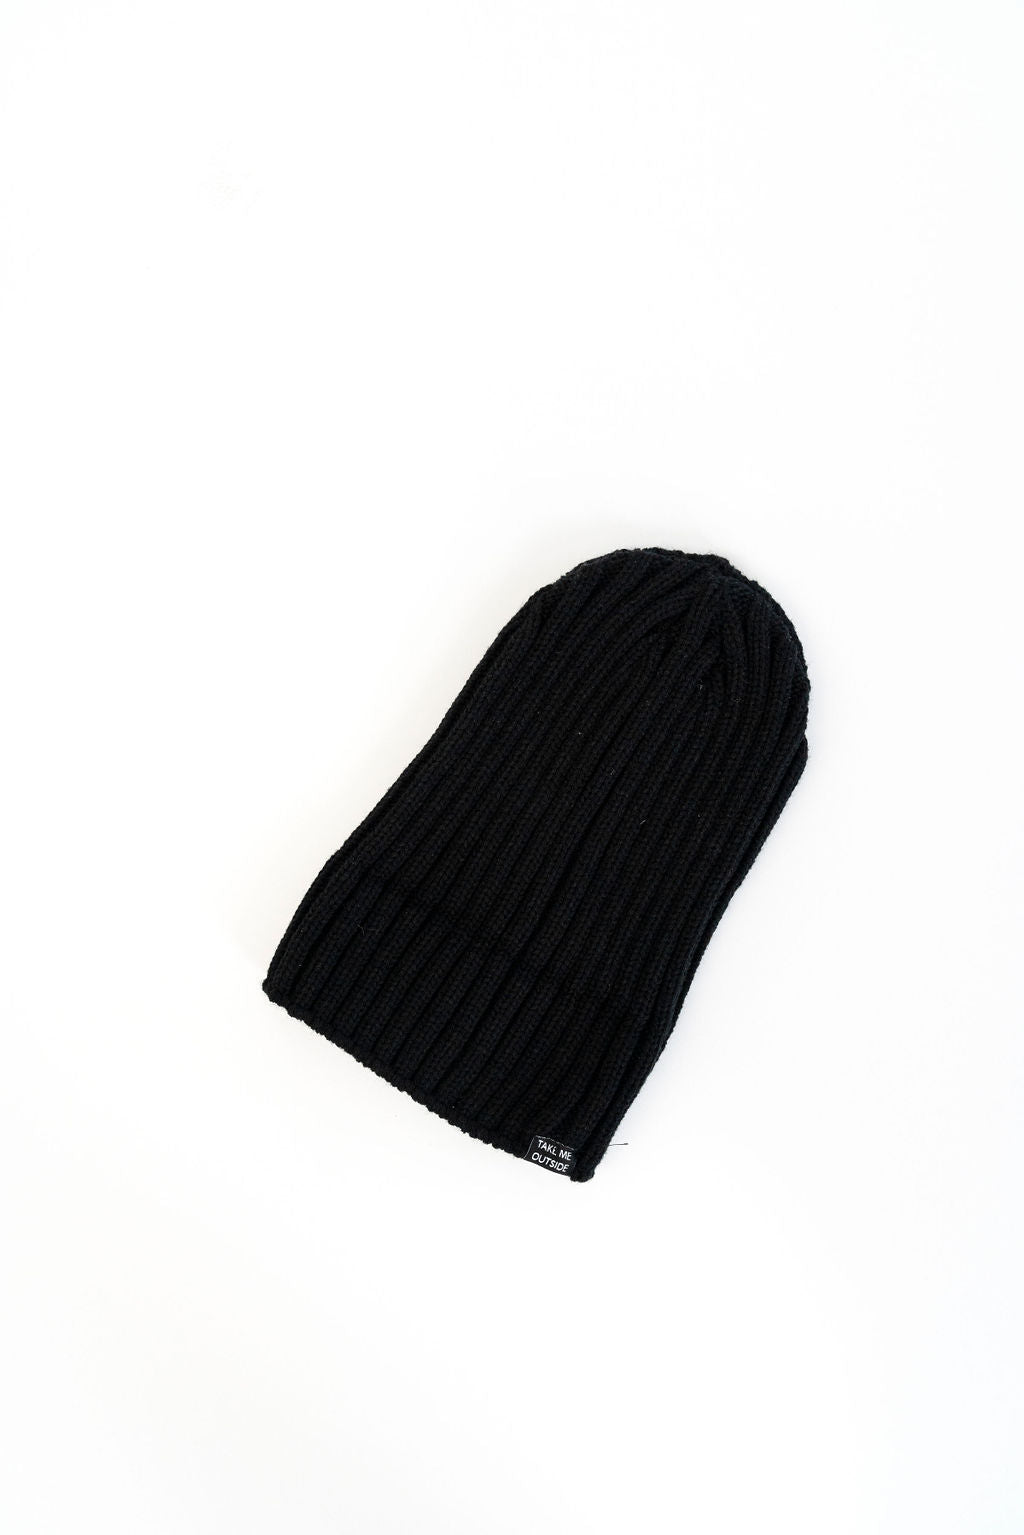 "The Wild | Life ""Great White North"" Rib Knit Toque Black"